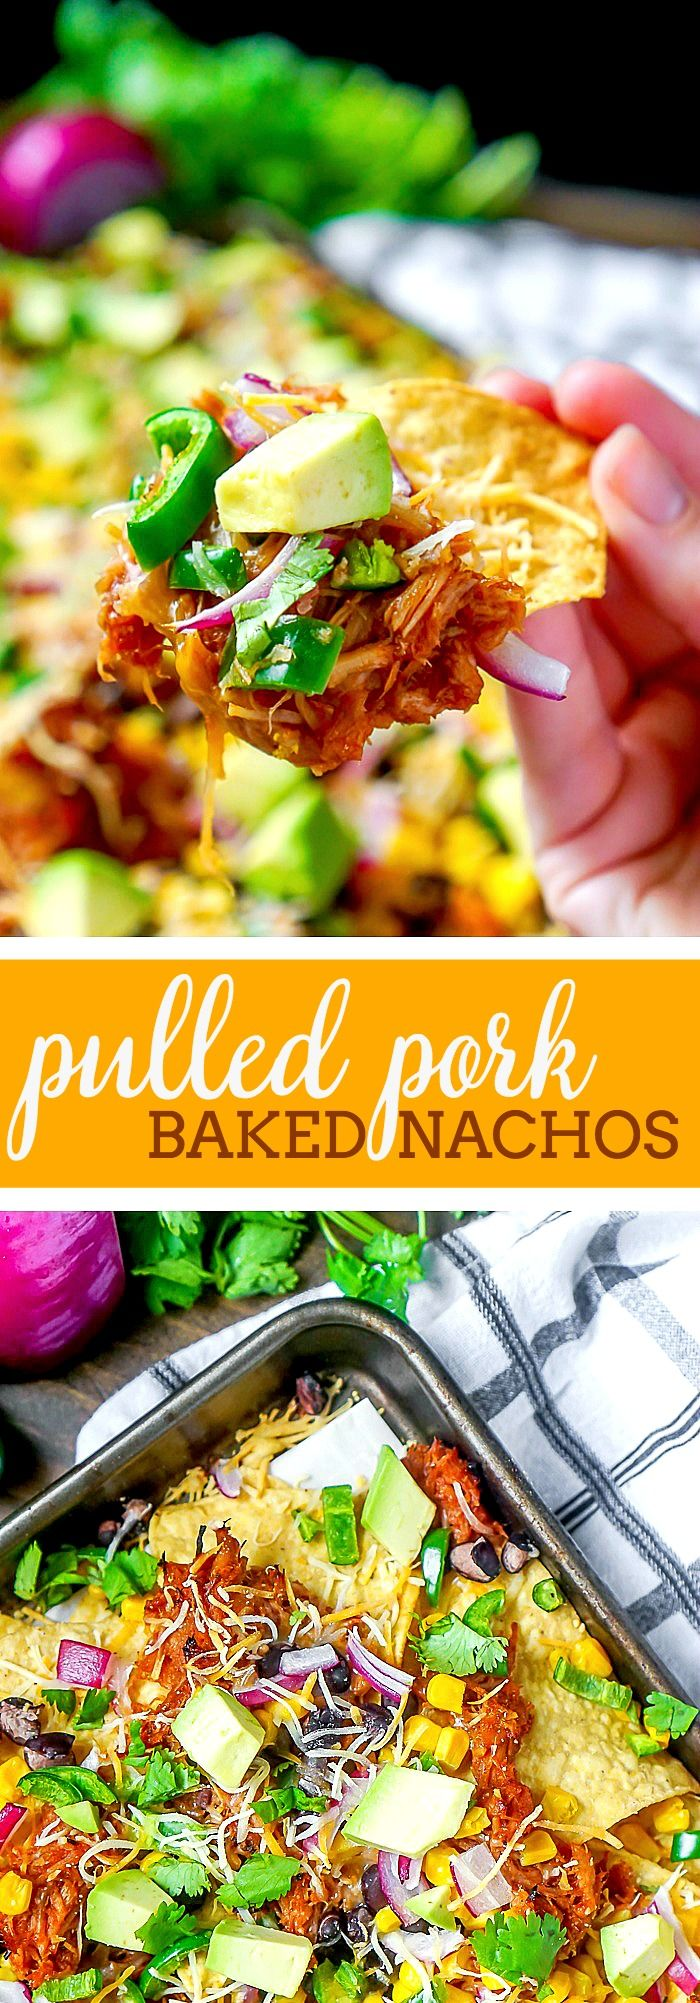 BBQ Pulled Pork Nachos - A tasty dinner or game day appetizer that only takes 15 minutes to make! Baked Nachos are always a quick and fun addition when menu planning! | The Love Nerds via @lovenerdmaggie